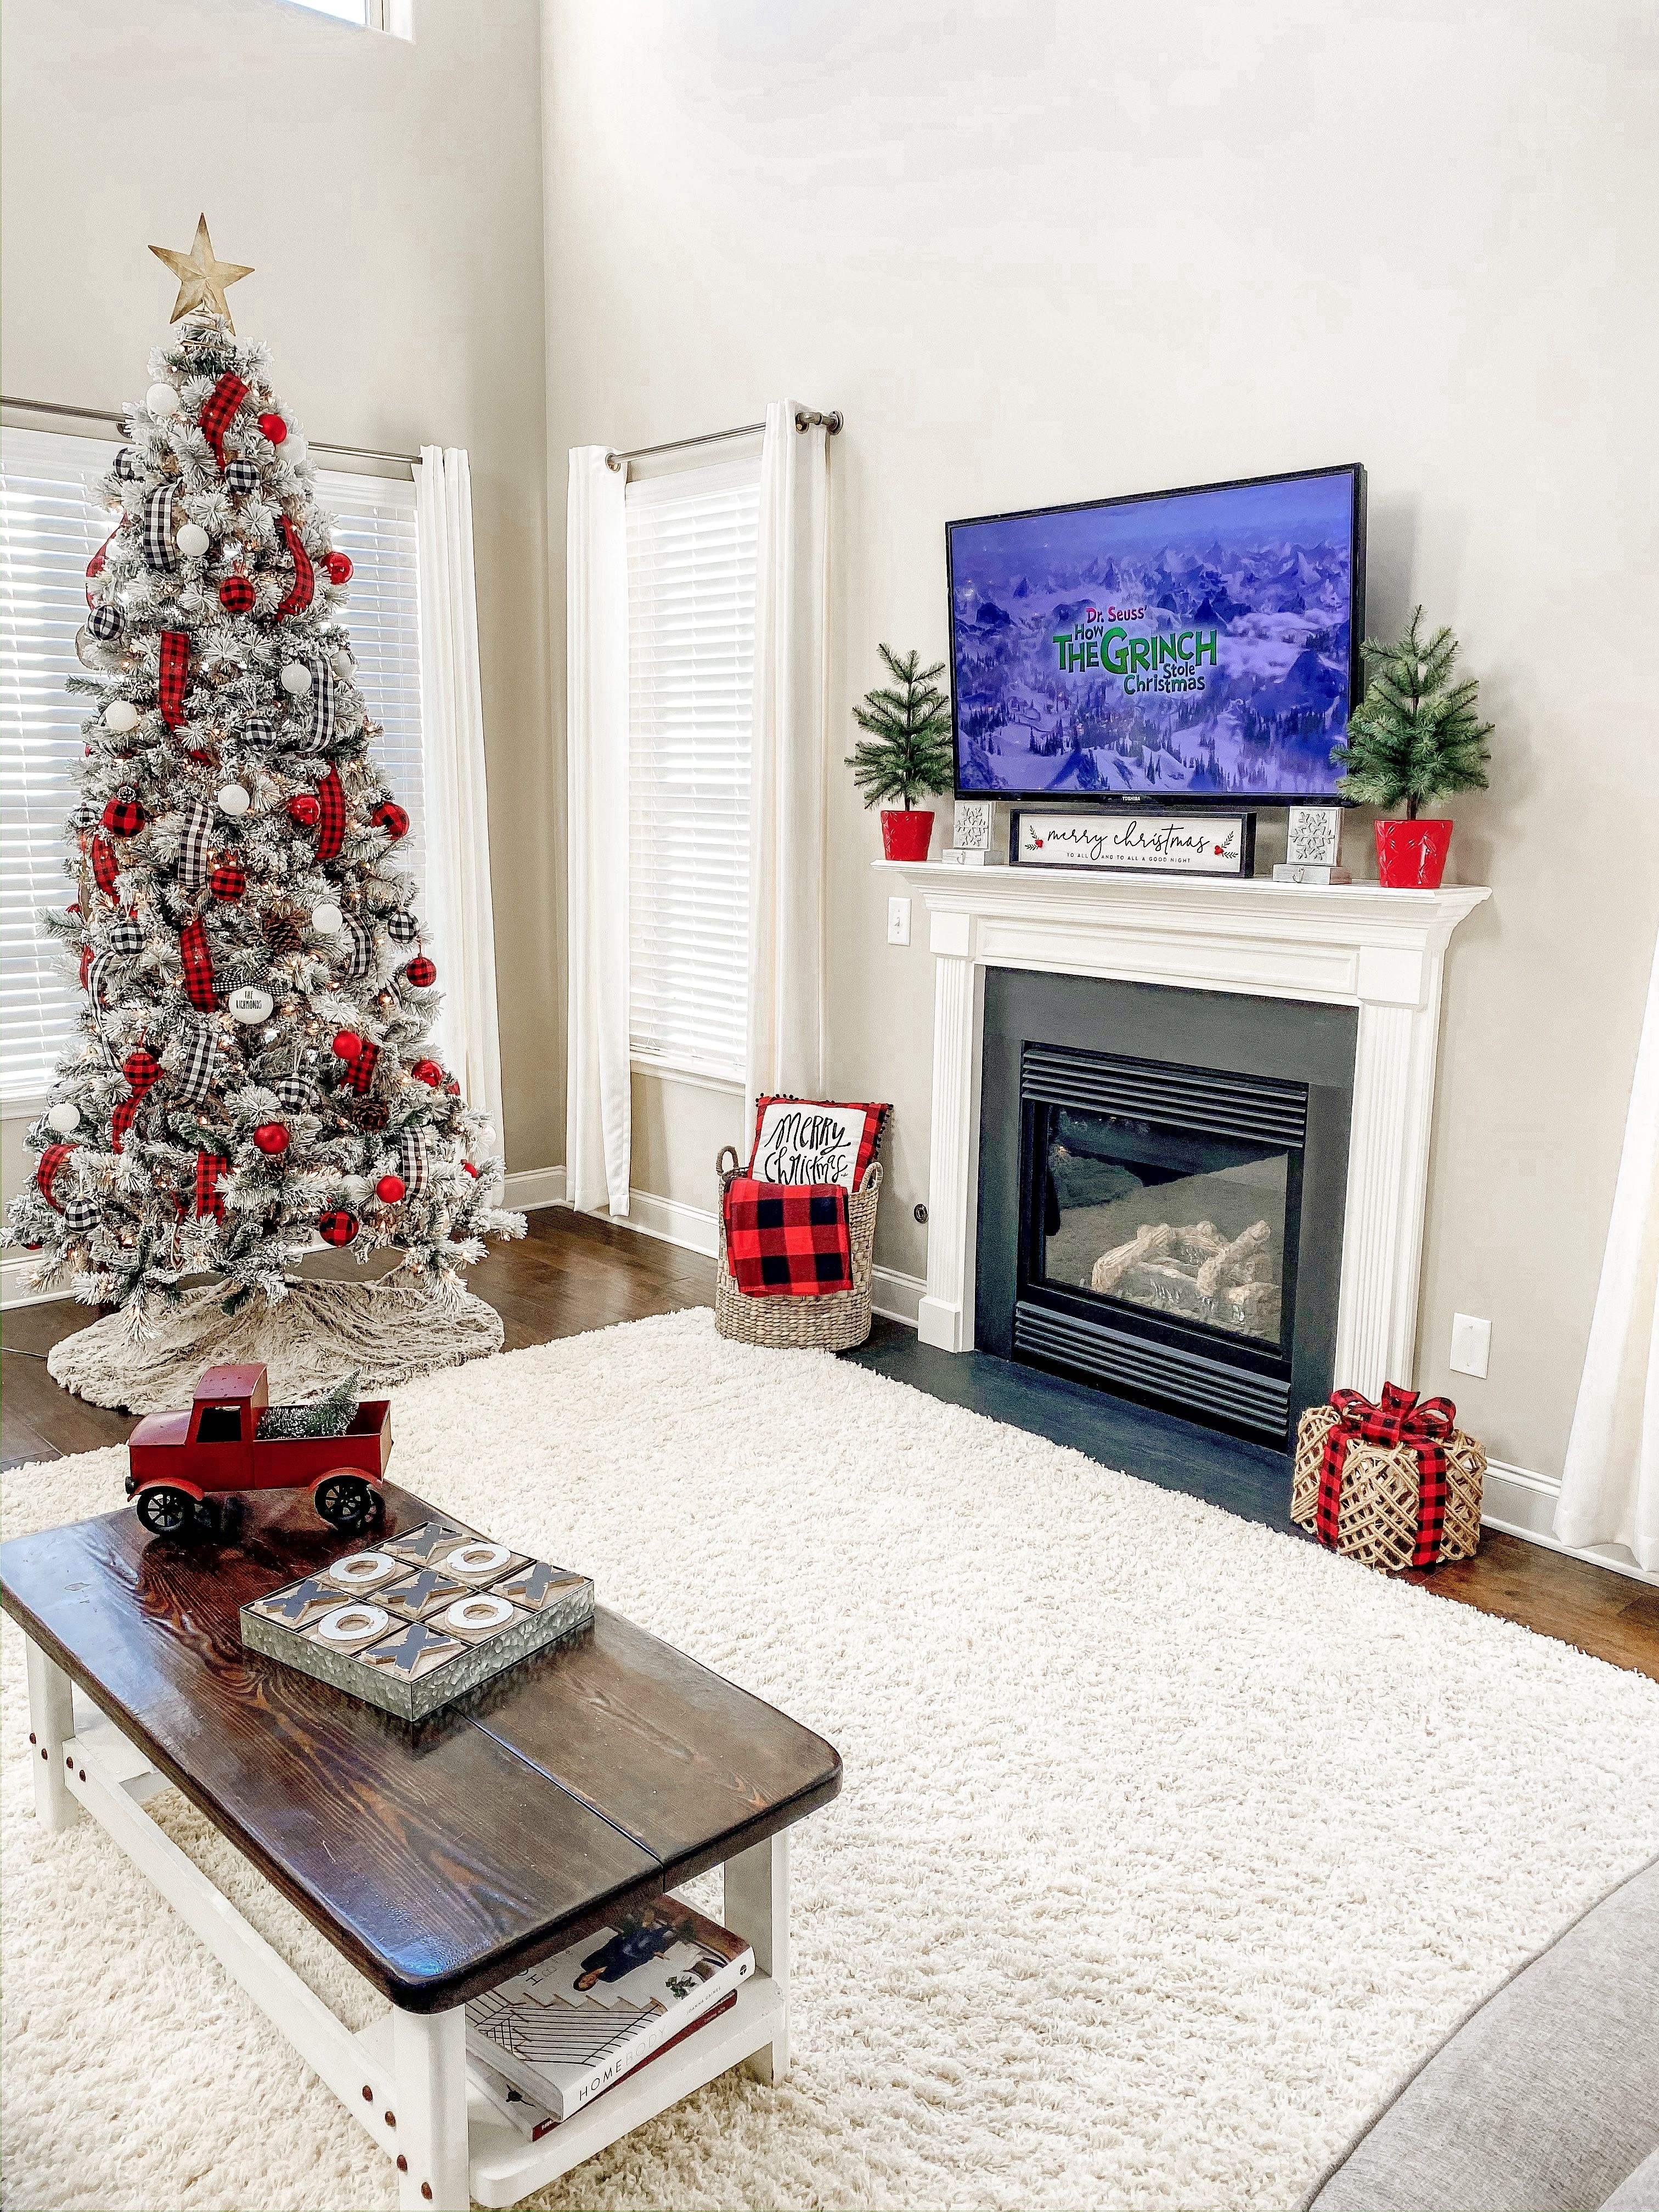 Living Room Christmas Decor Ideas Living Room Christmas Tree Living Room Chris Christmas Decorations Living Room Christmas Living Rooms Christmas Decor Diy #tree #decor #for #living #room